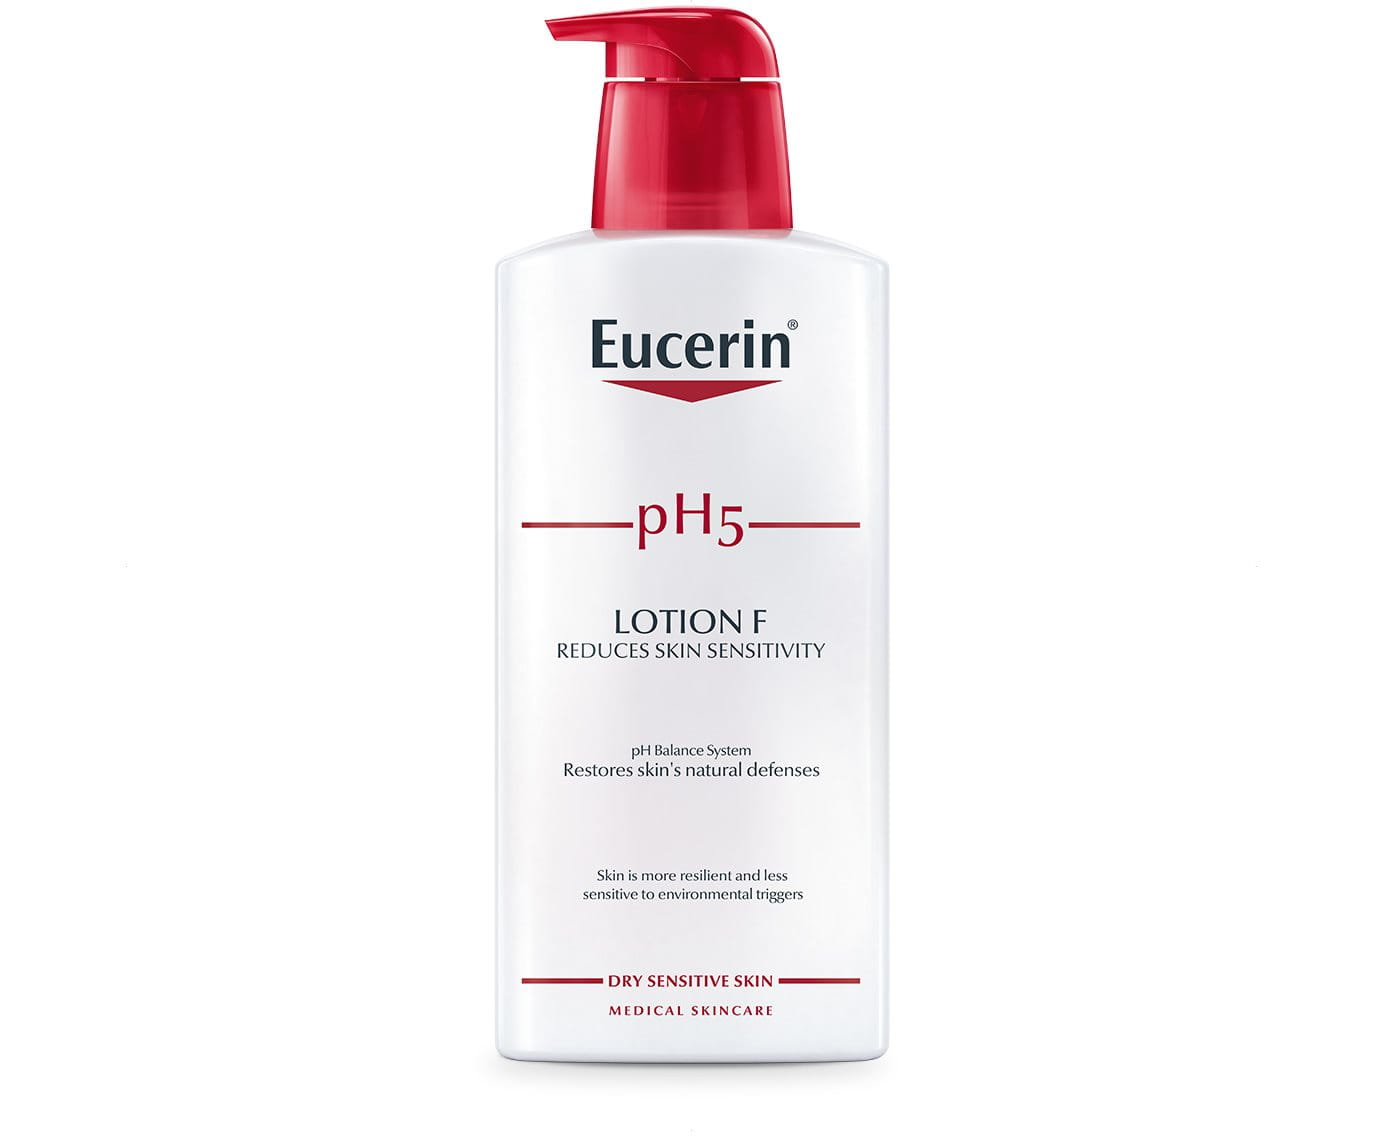 ph5 lotion f rich body lotion for dry sensitive skin eucerin. Black Bedroom Furniture Sets. Home Design Ideas